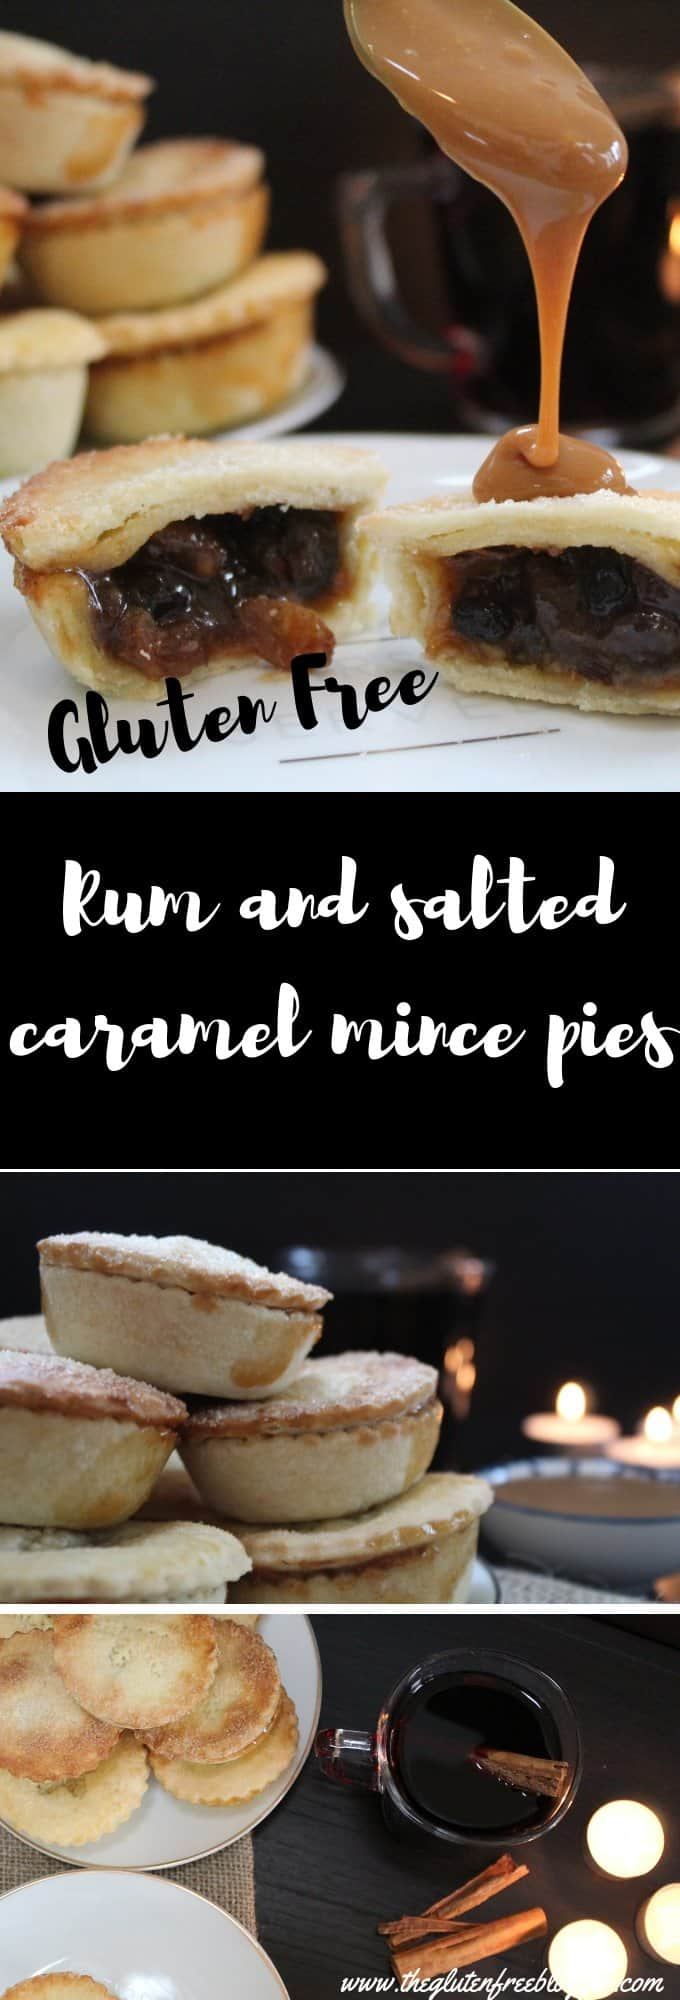 gluten free rum and salted caramel mince pies - coeliac friendly - gluten free christmas recipe